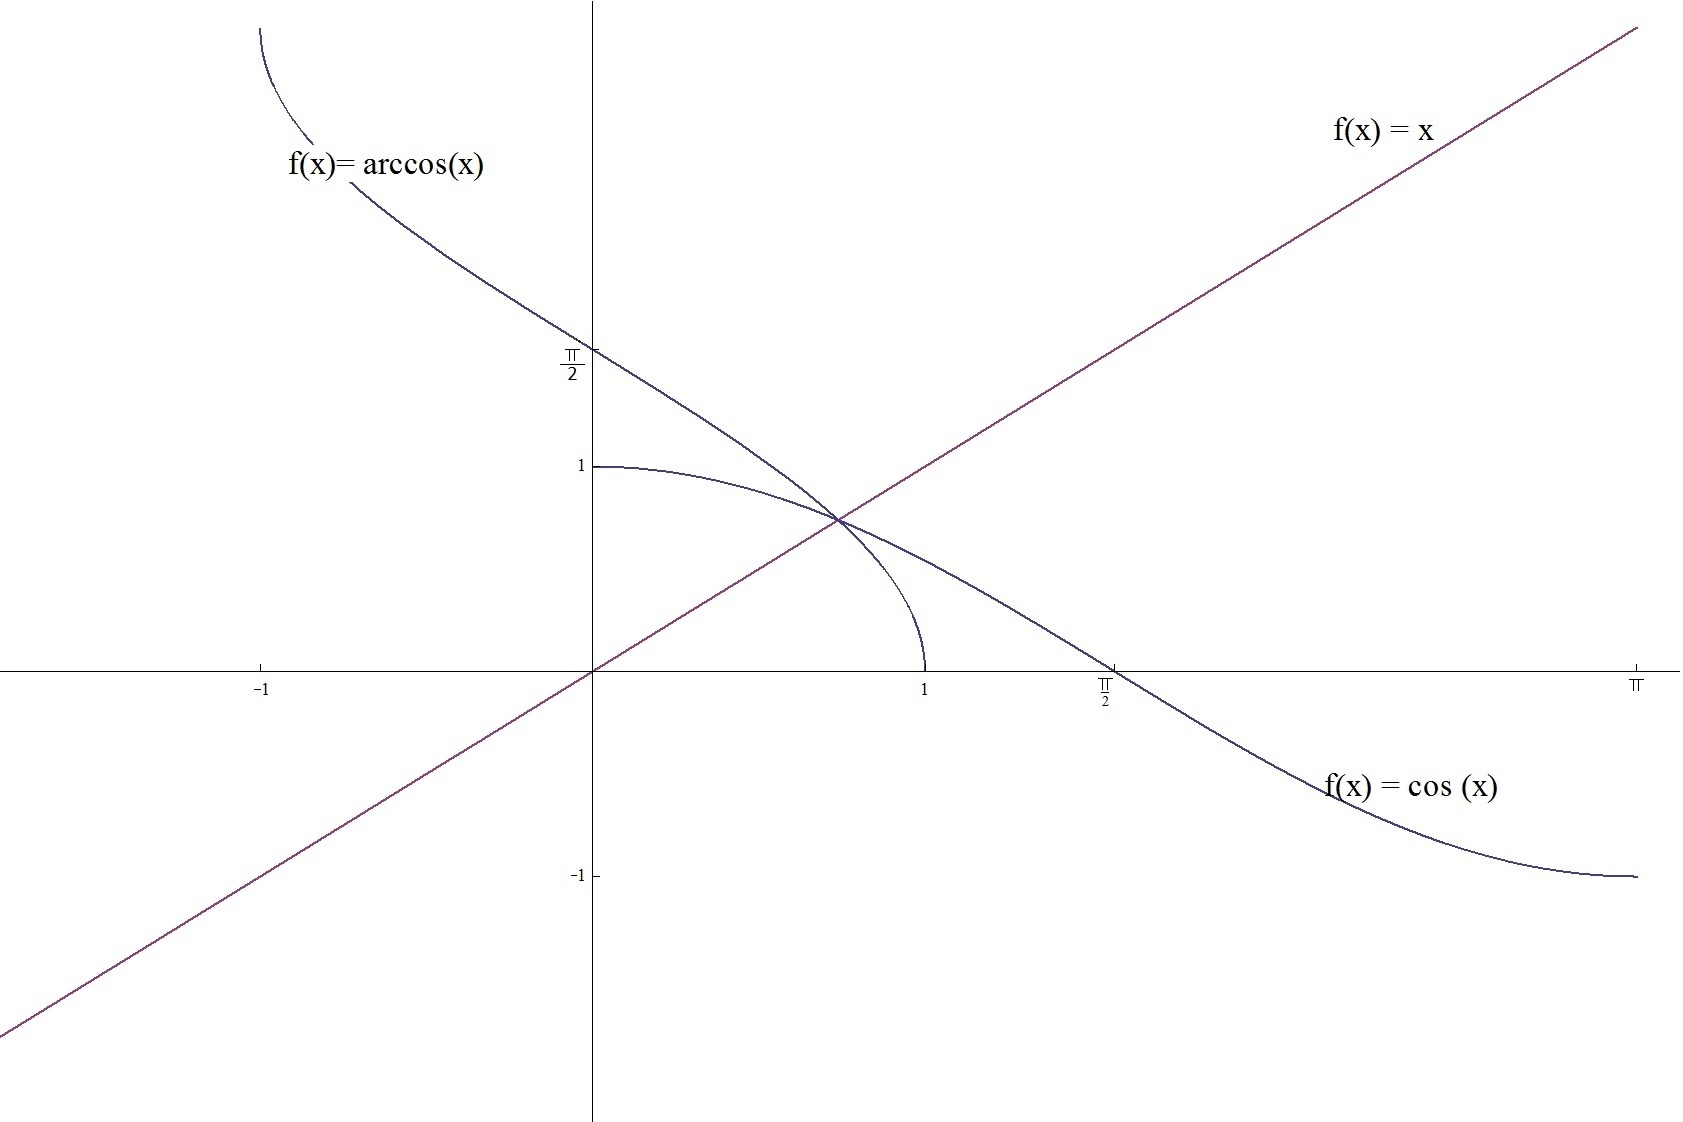 Graph Of Functions X Cosx And Arccosx